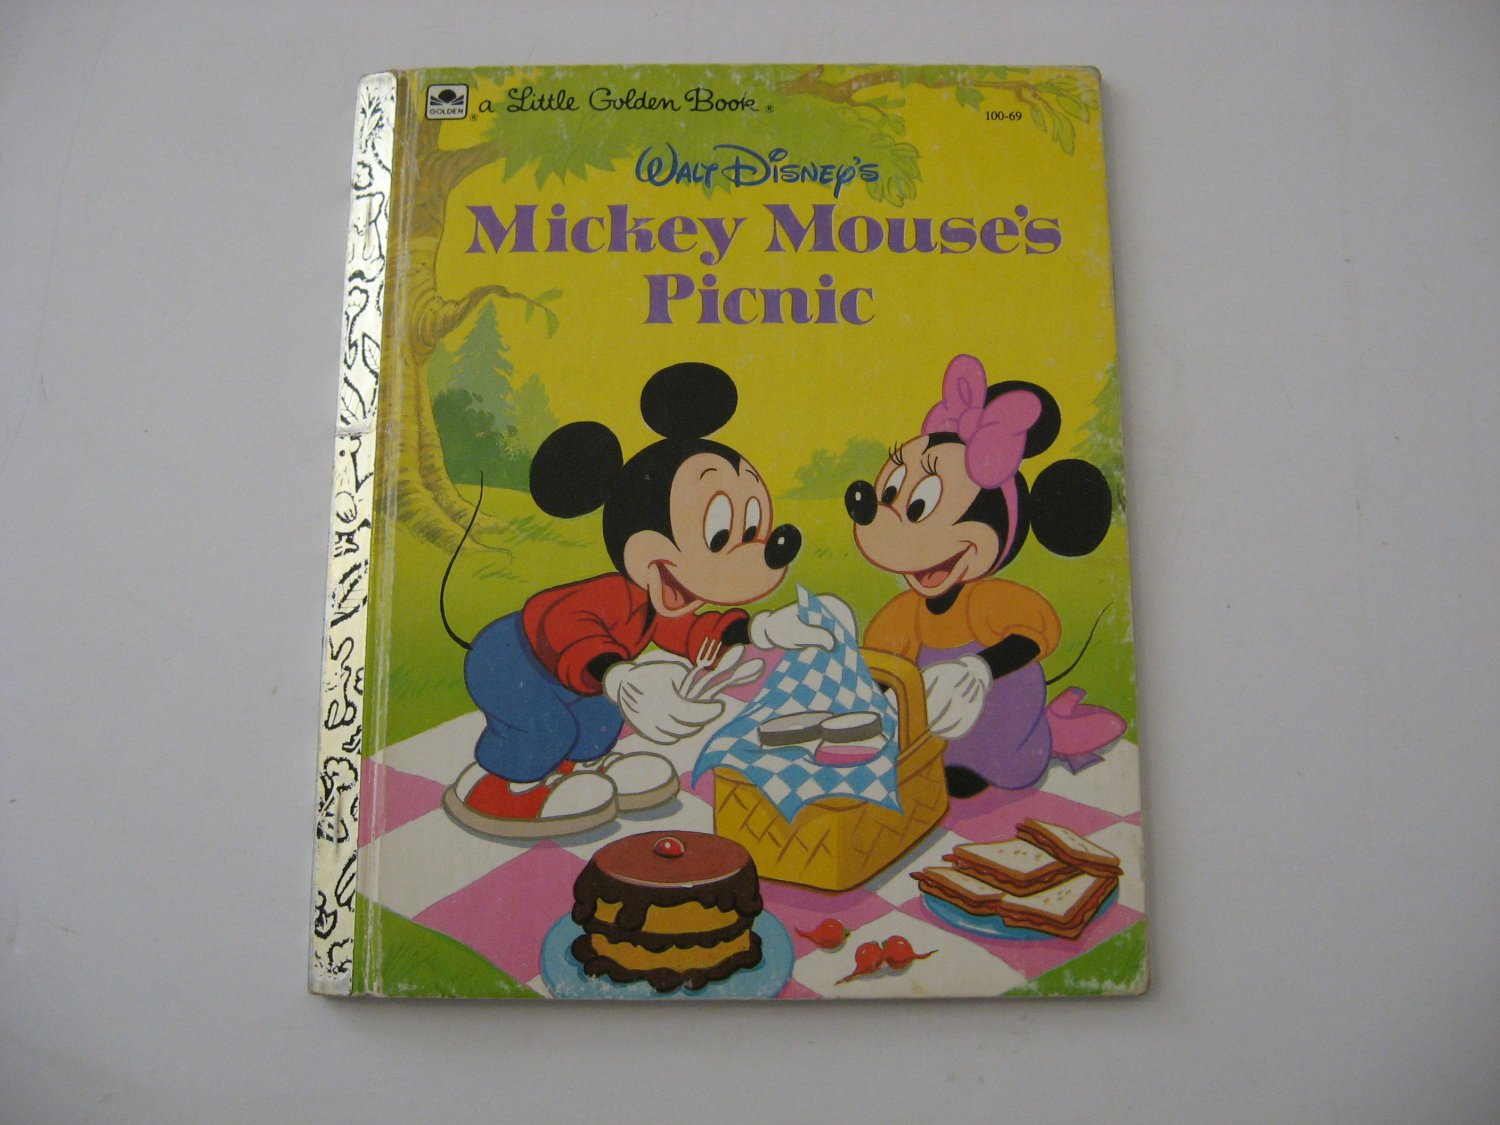 1950 Walt Disney's Mickey Mouse's Picnic -  Illustrated Little Golden Book